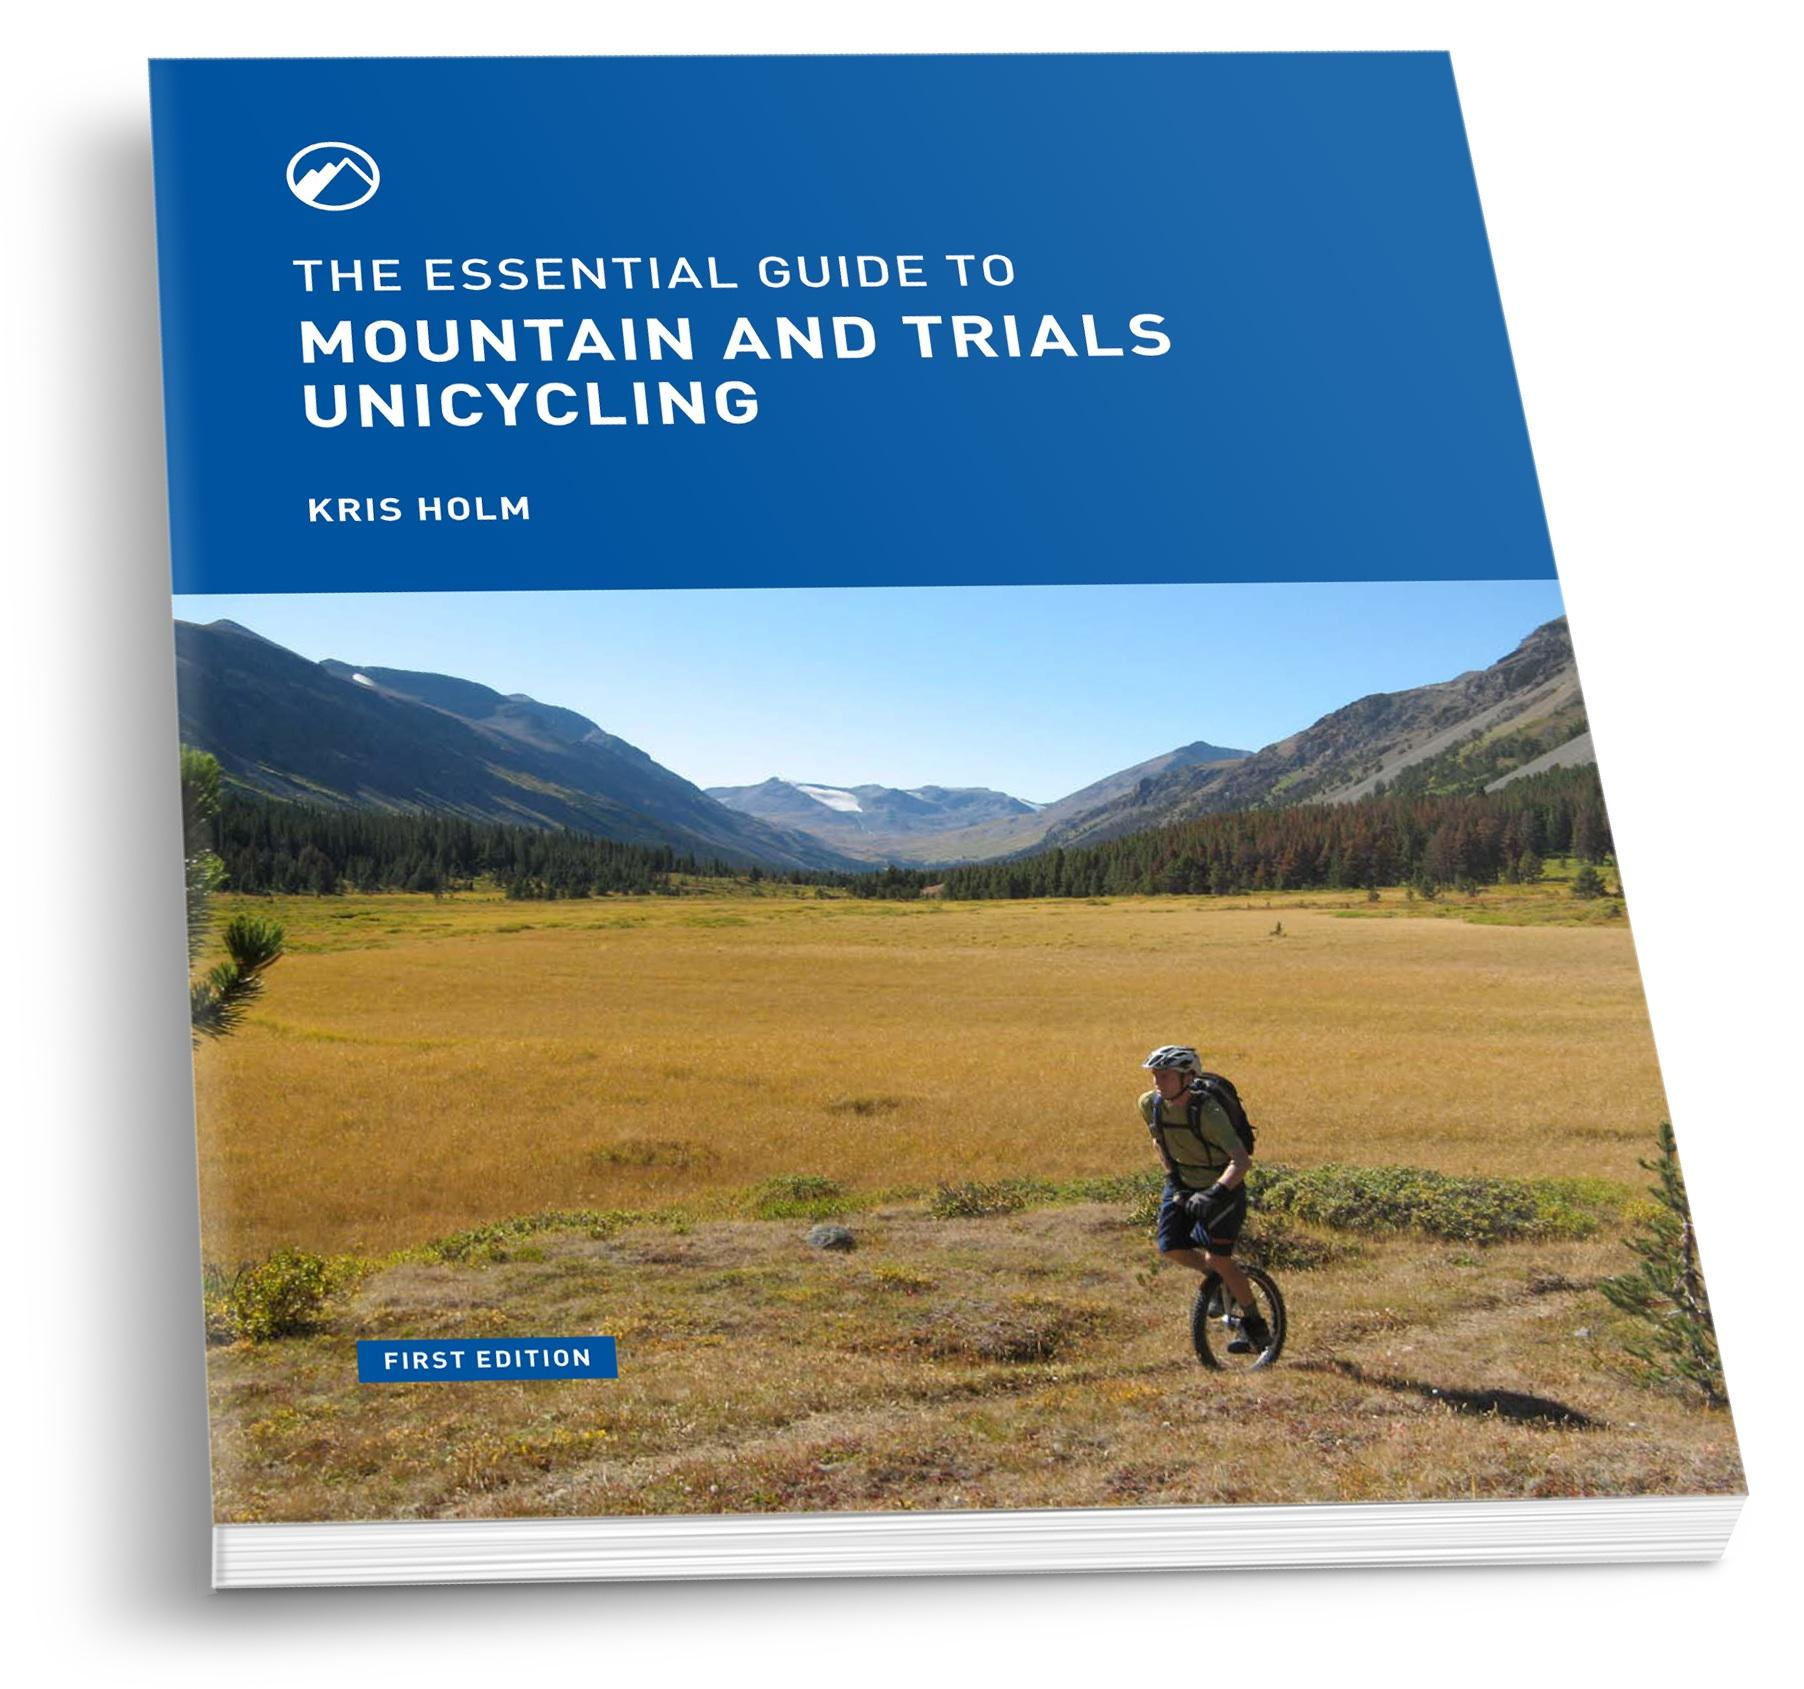 Book of Unicycle - The Essential Guide to Mountain Unicycling